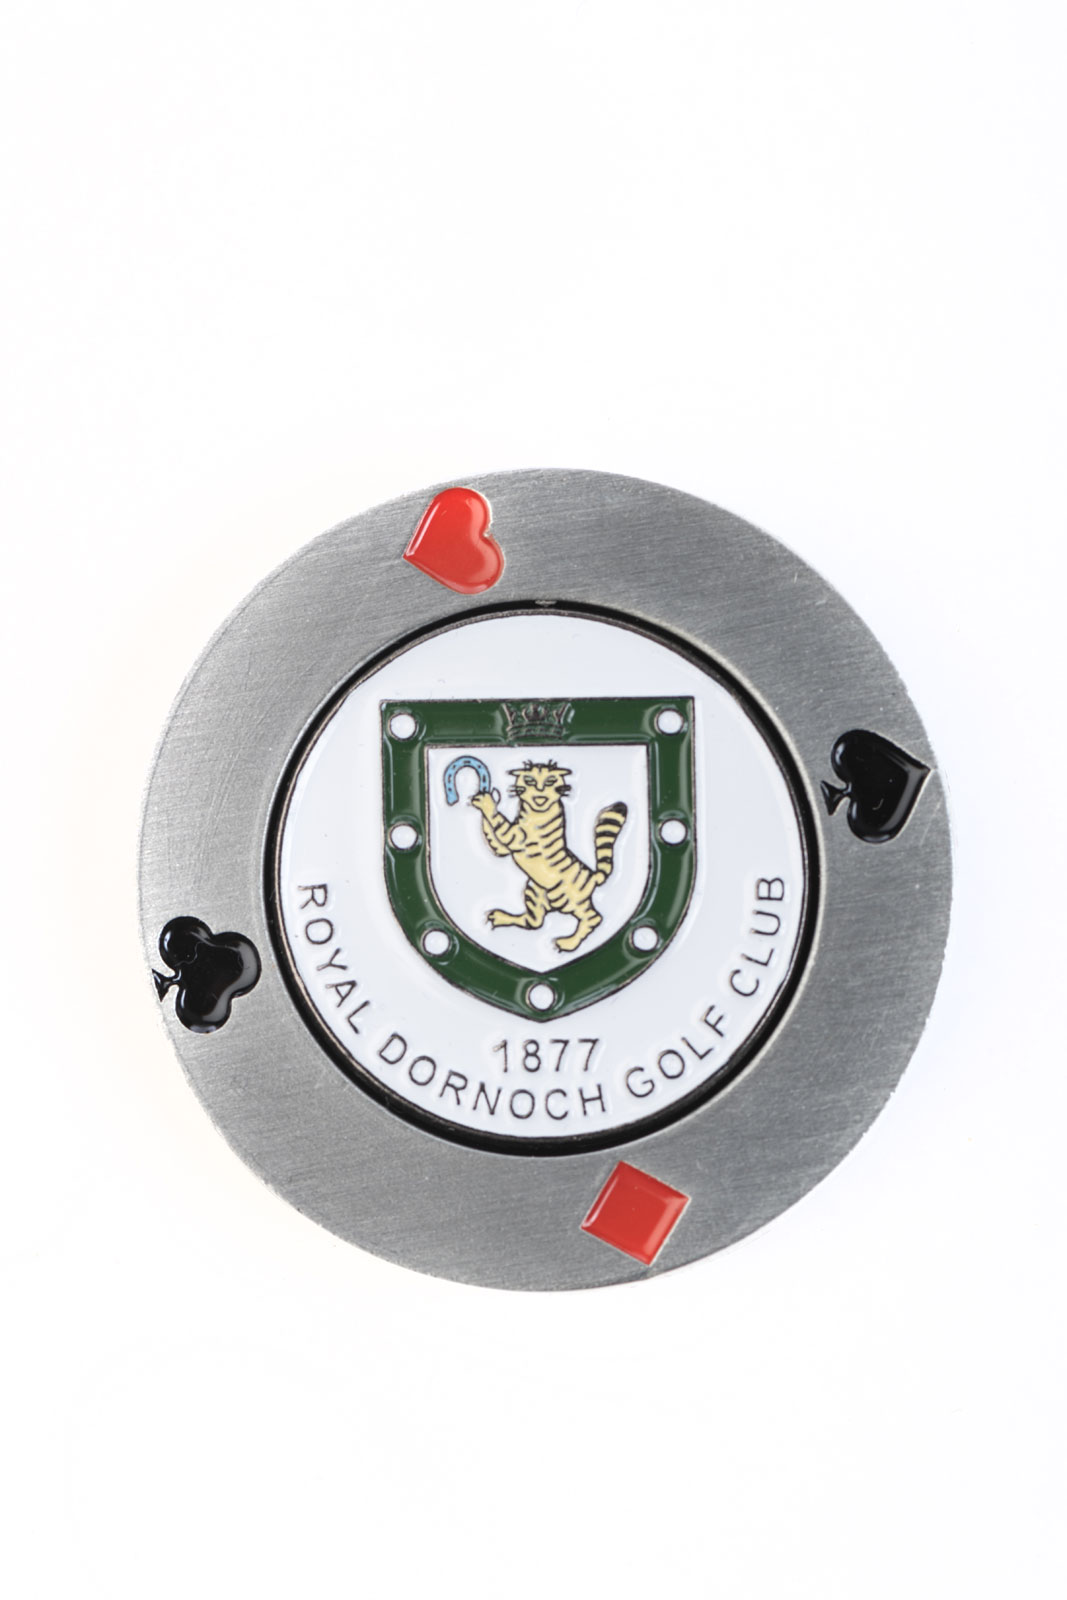 Metal Poker Chip Marker Royal Dornoch Pro Shop